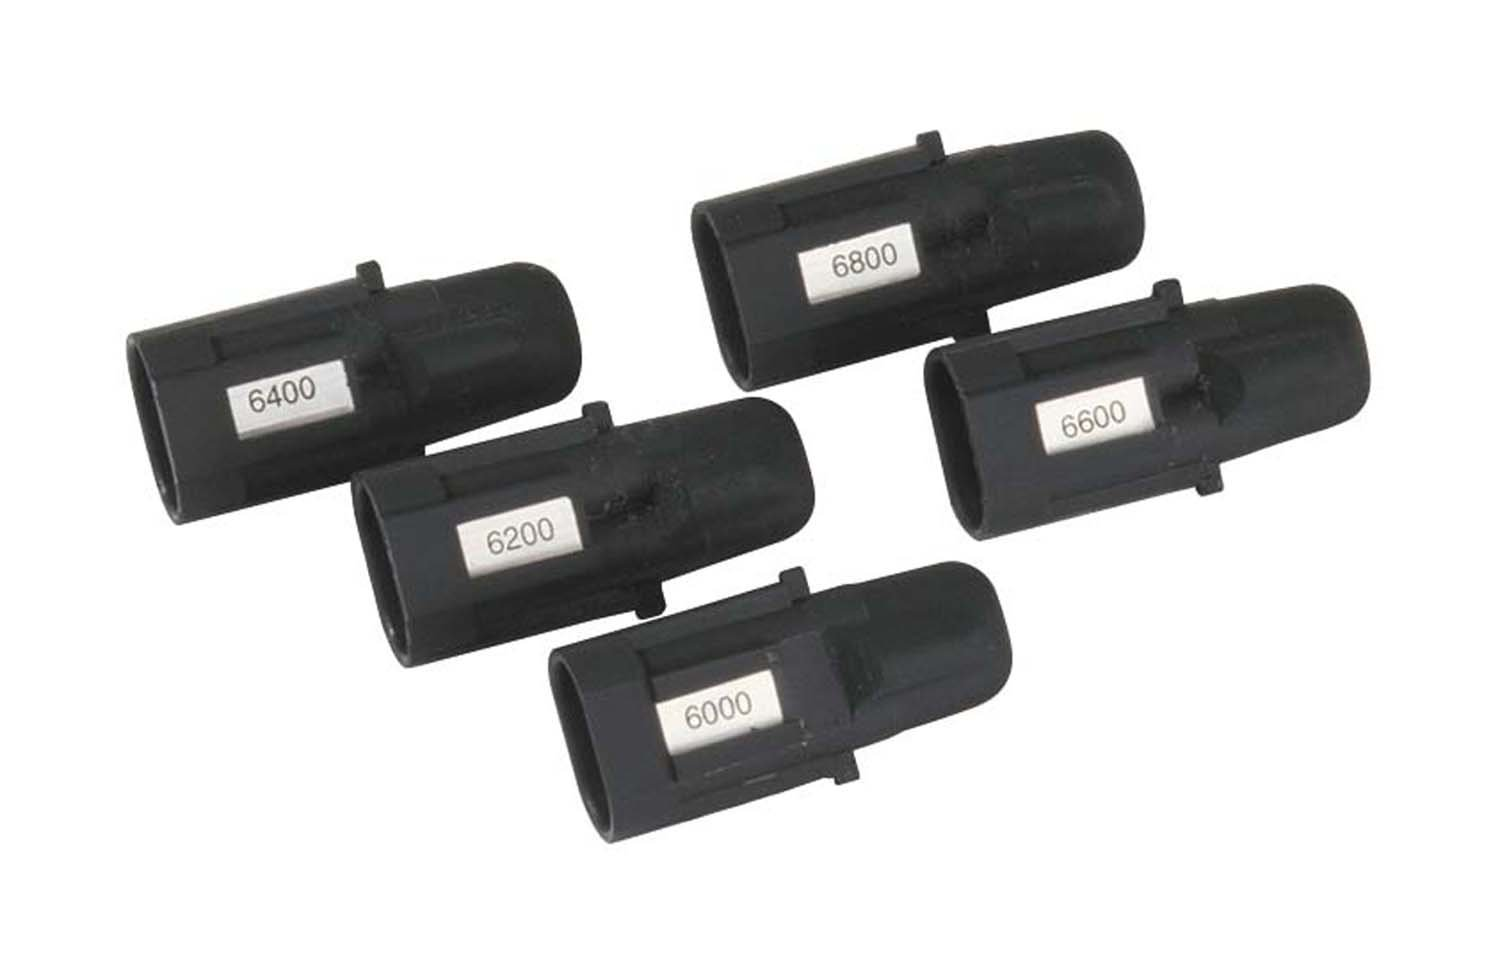 87466 - 6000 Series Module Kit, Marine Image